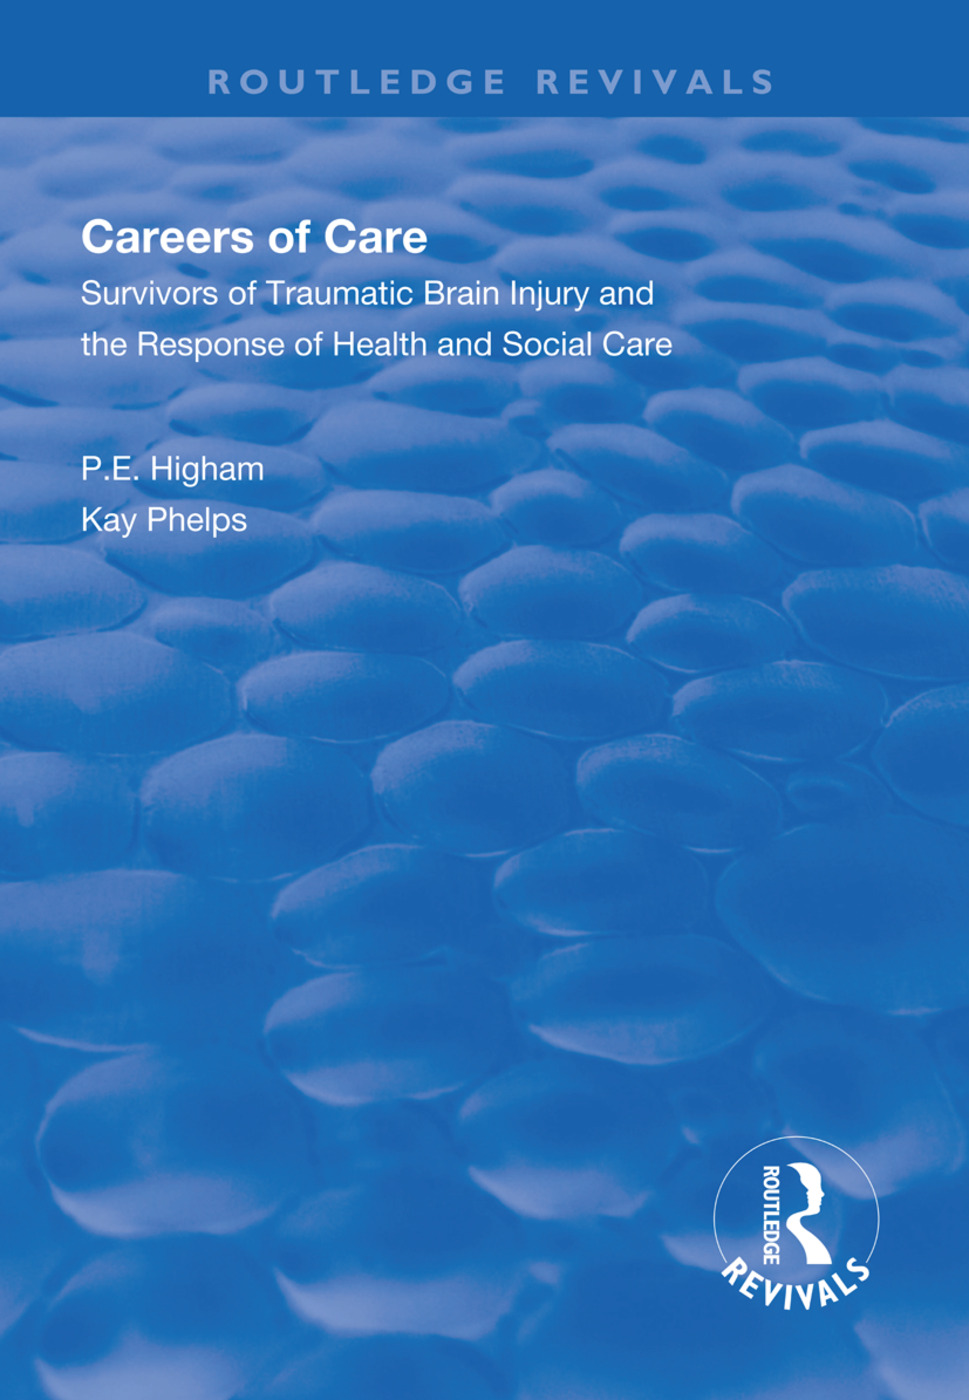 Careers of Care: Survivors of Traumatic Brain Injury and the Response of Health and Social Care book cover